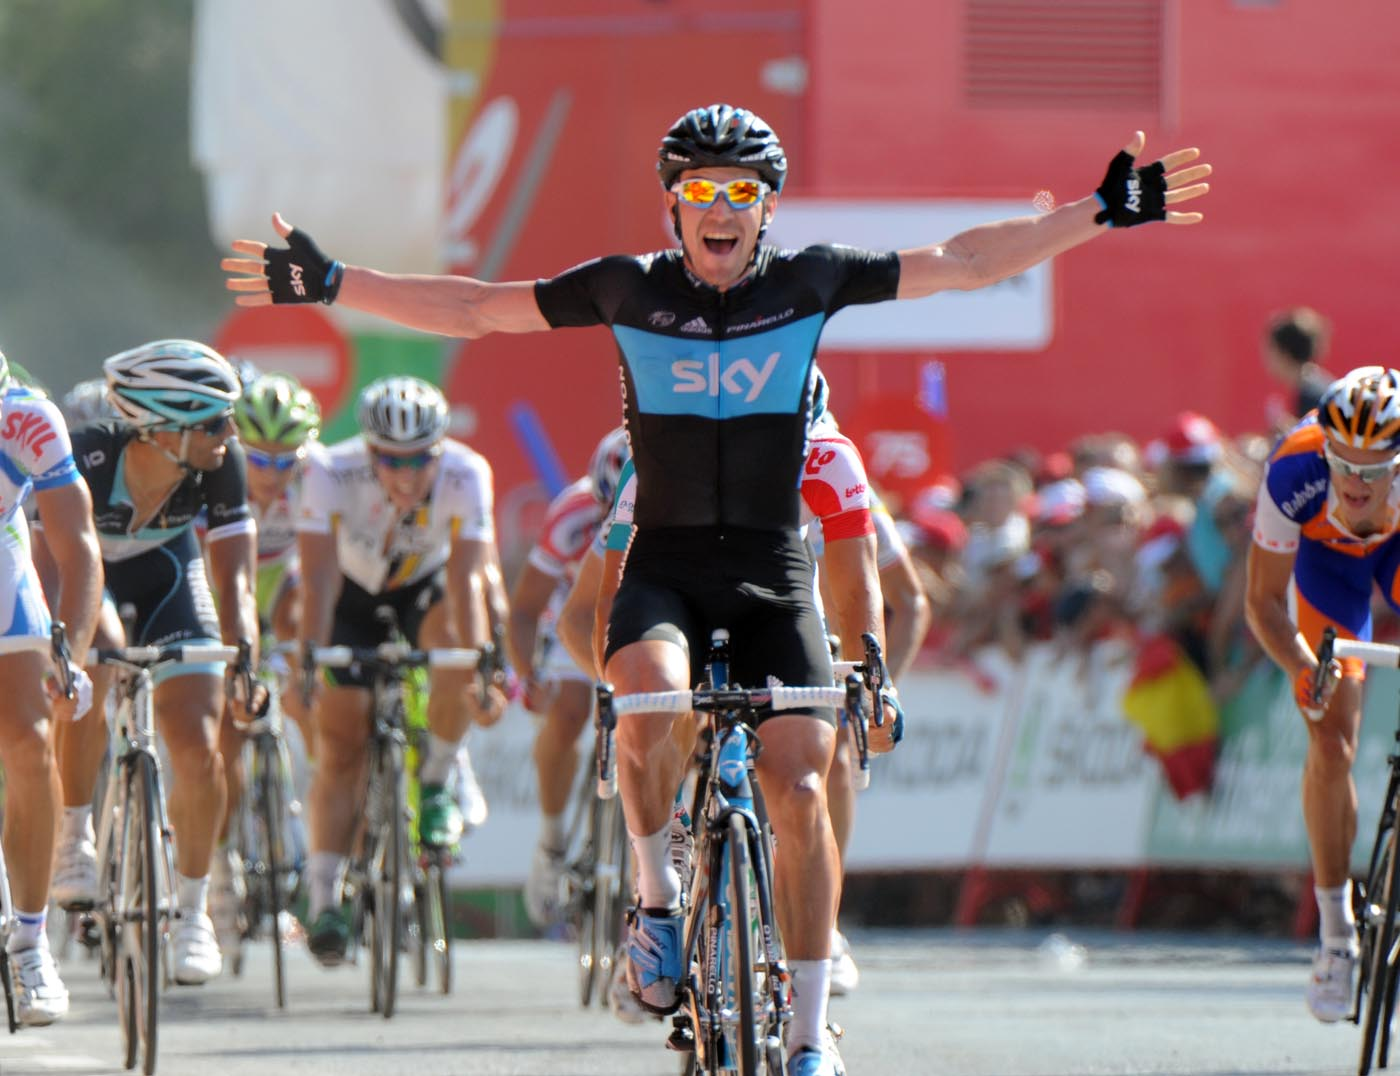 Chris Sutton wins, Vuelta a Espana 2011, stage two